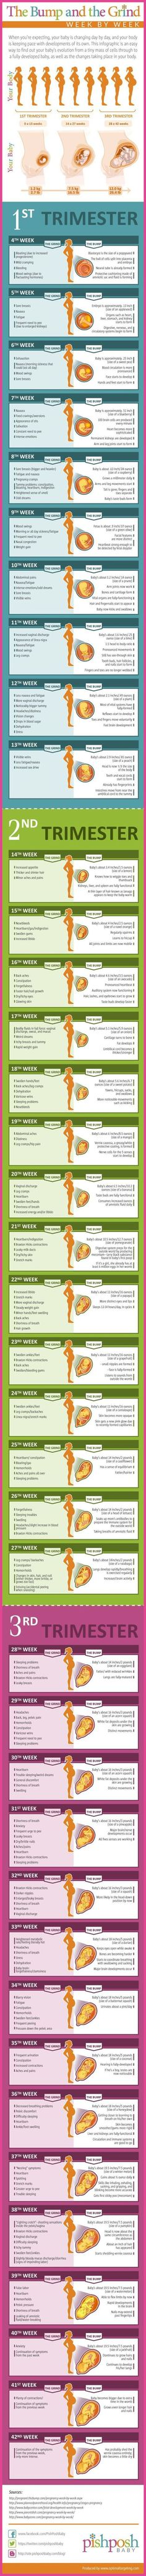 [Pregnancy Symptoms] Pregnancy Timeline - A Male's Point of View ** For more information, visit image link. #PregnancyWeeklyGuides